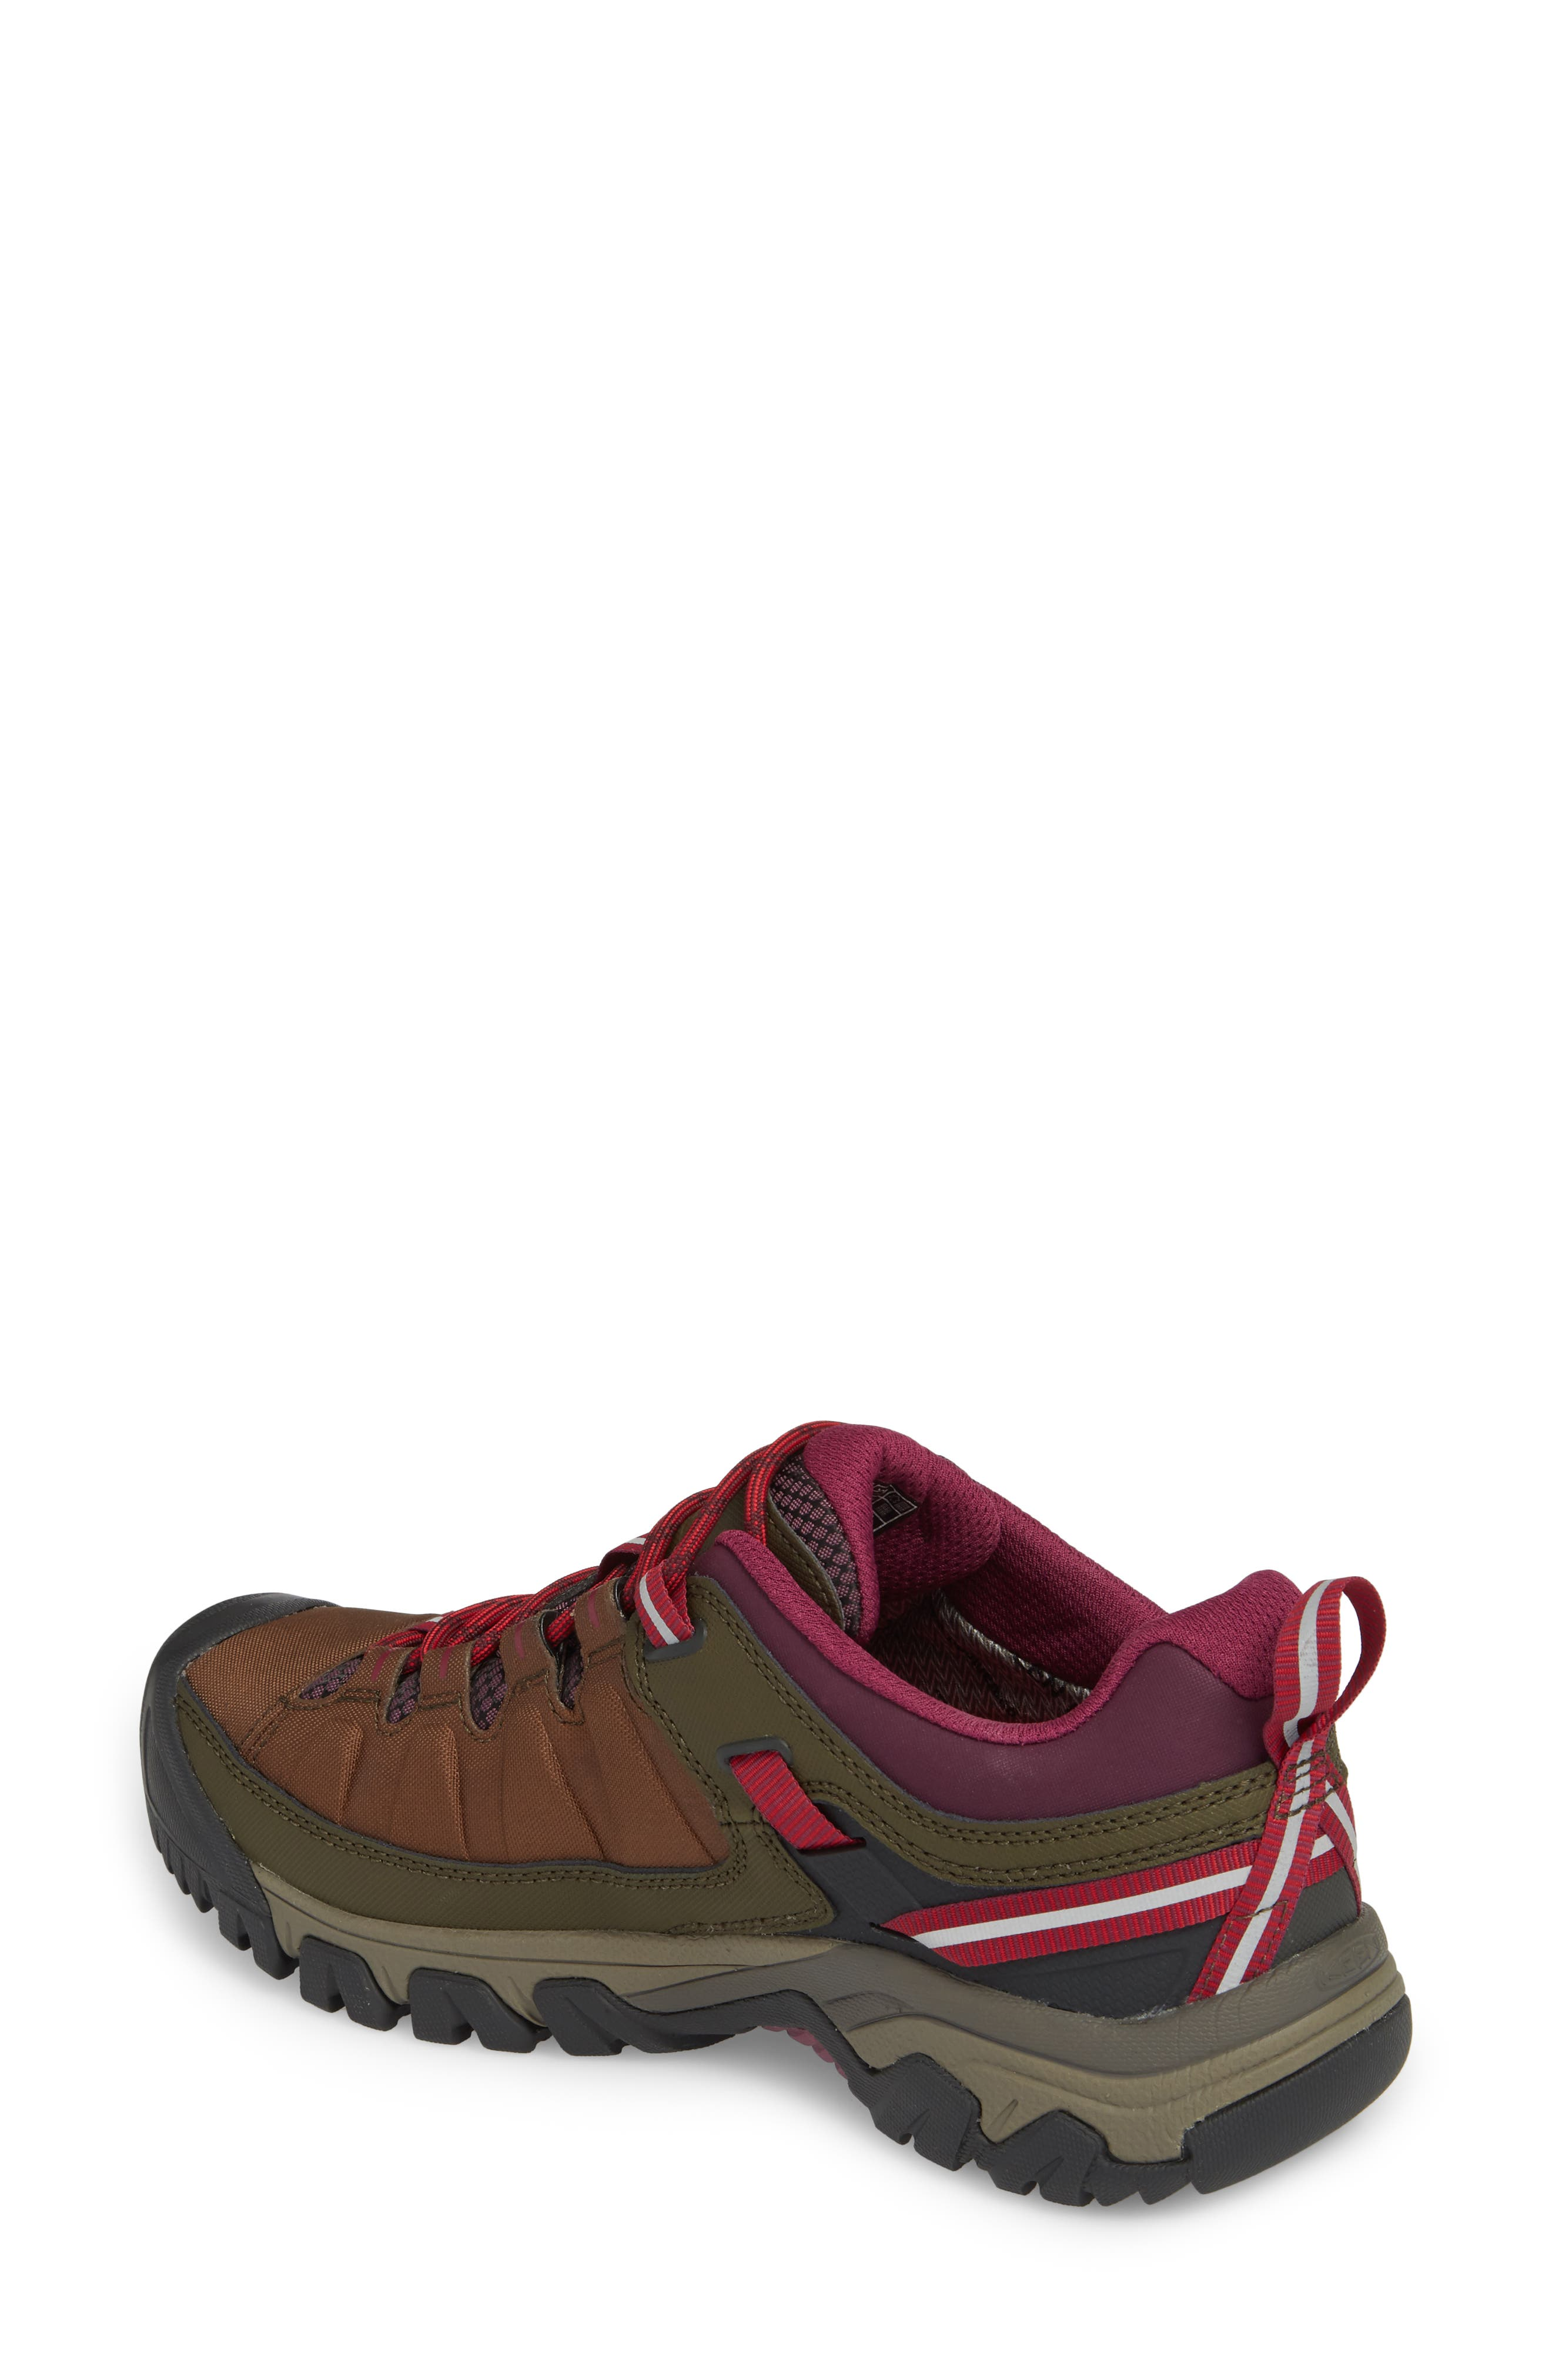 Alternate Image 2  - Keen Targhee EXP Waterproof Hiking Shoe (Women)